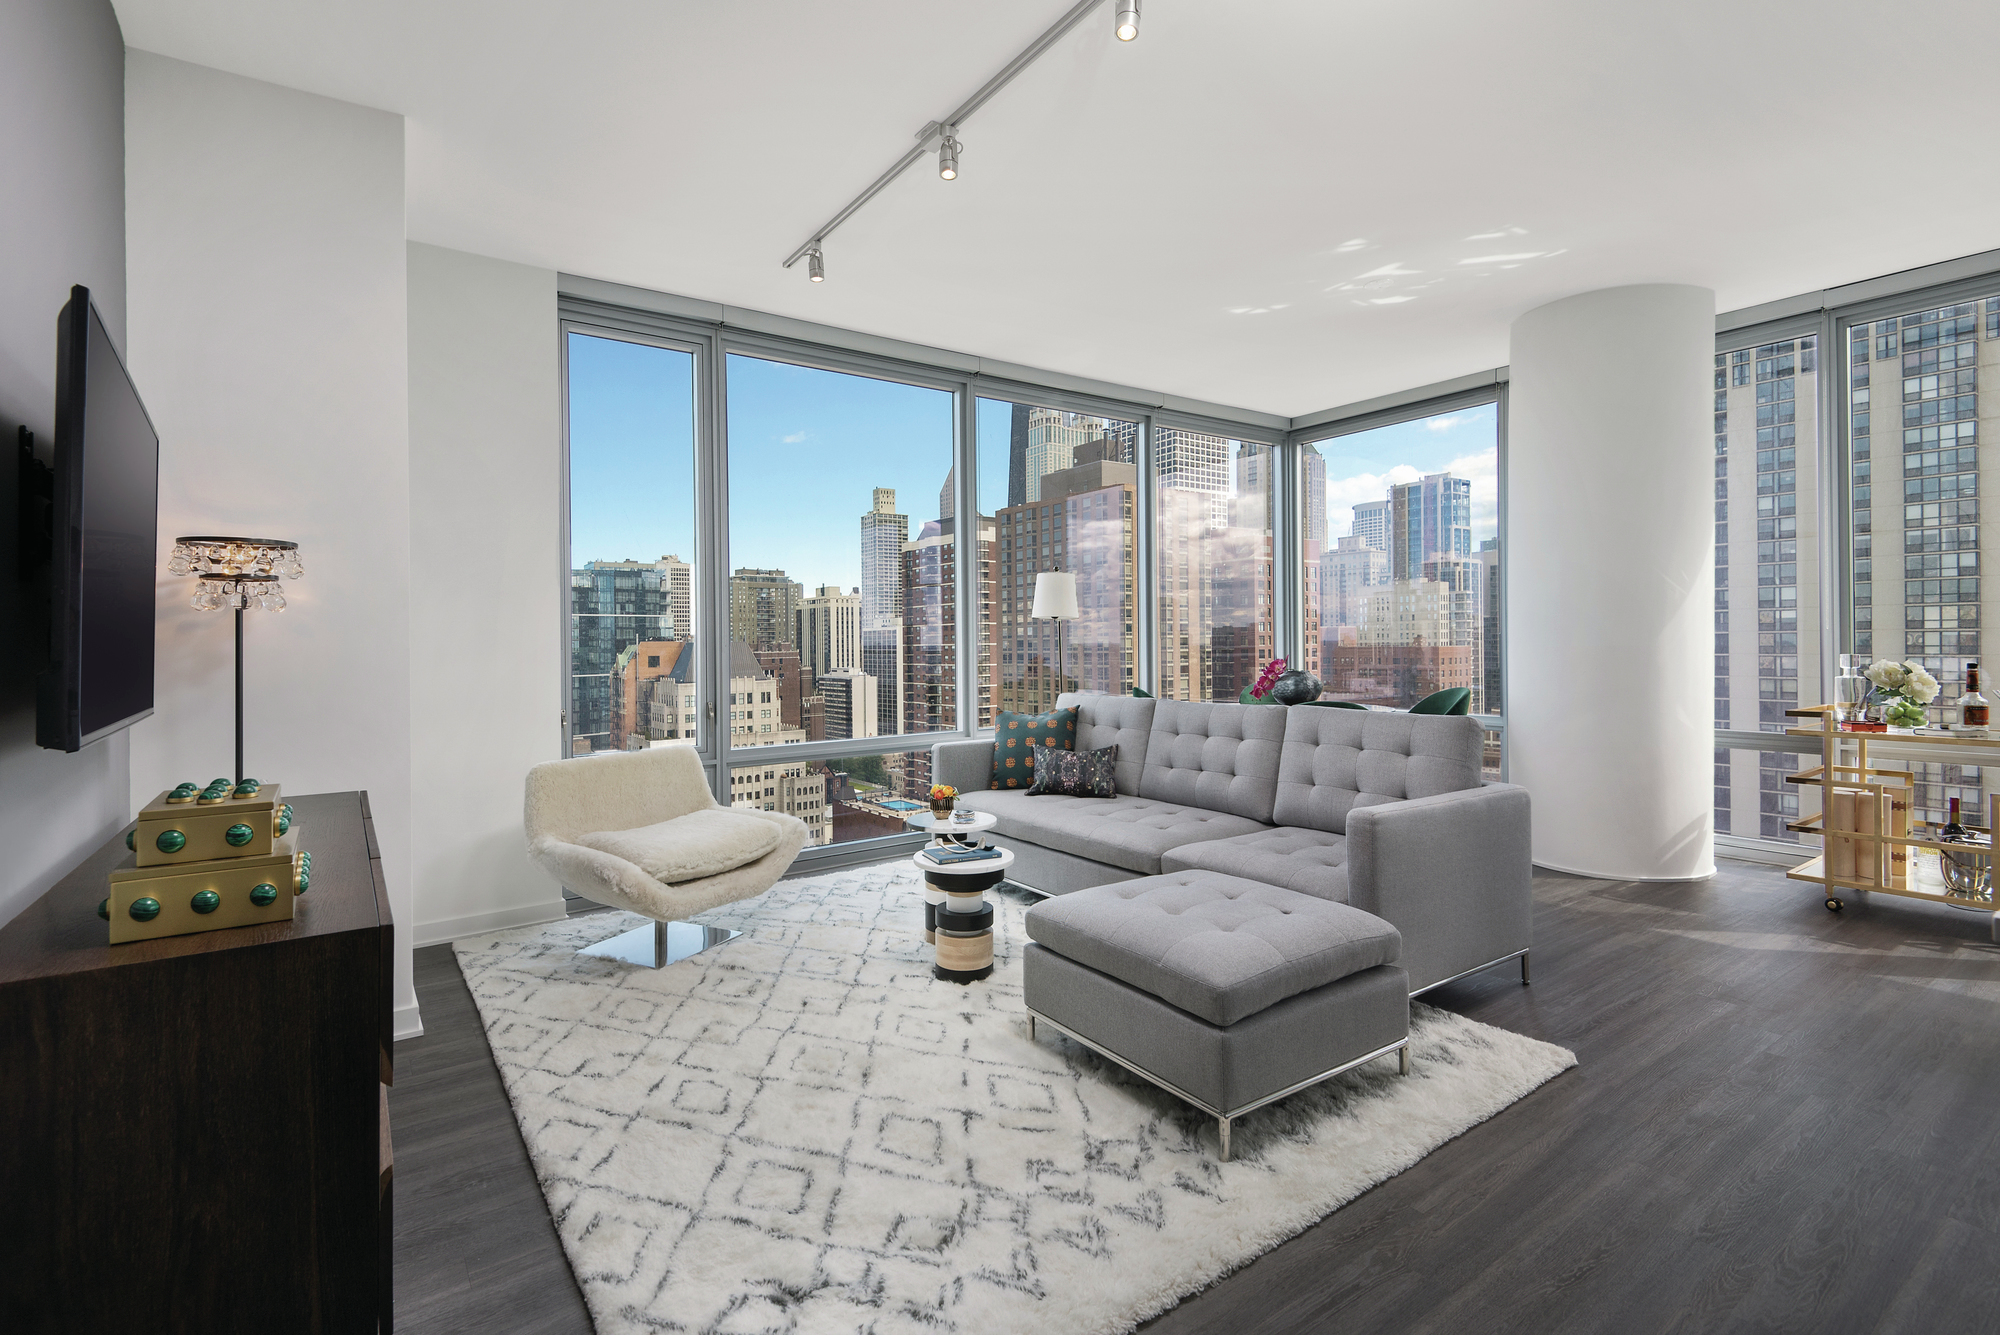 Luxury Sinclair Apartments Open in Chicagos Gold Coast  Multifamily Executive Magazine